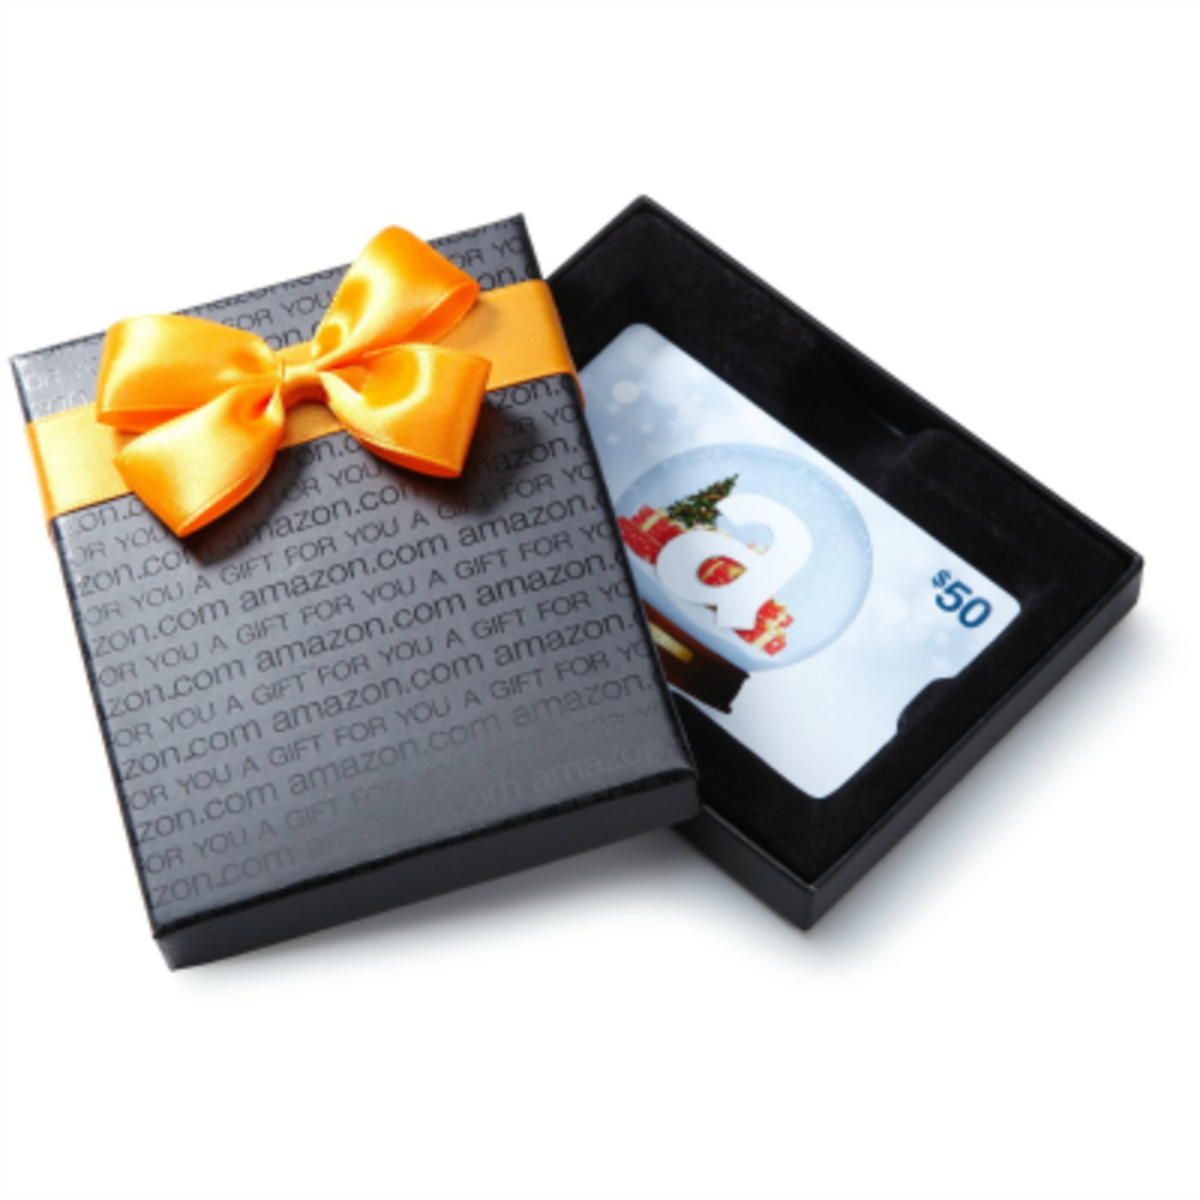 Amazon.com Gift Cards - In a Gift Box